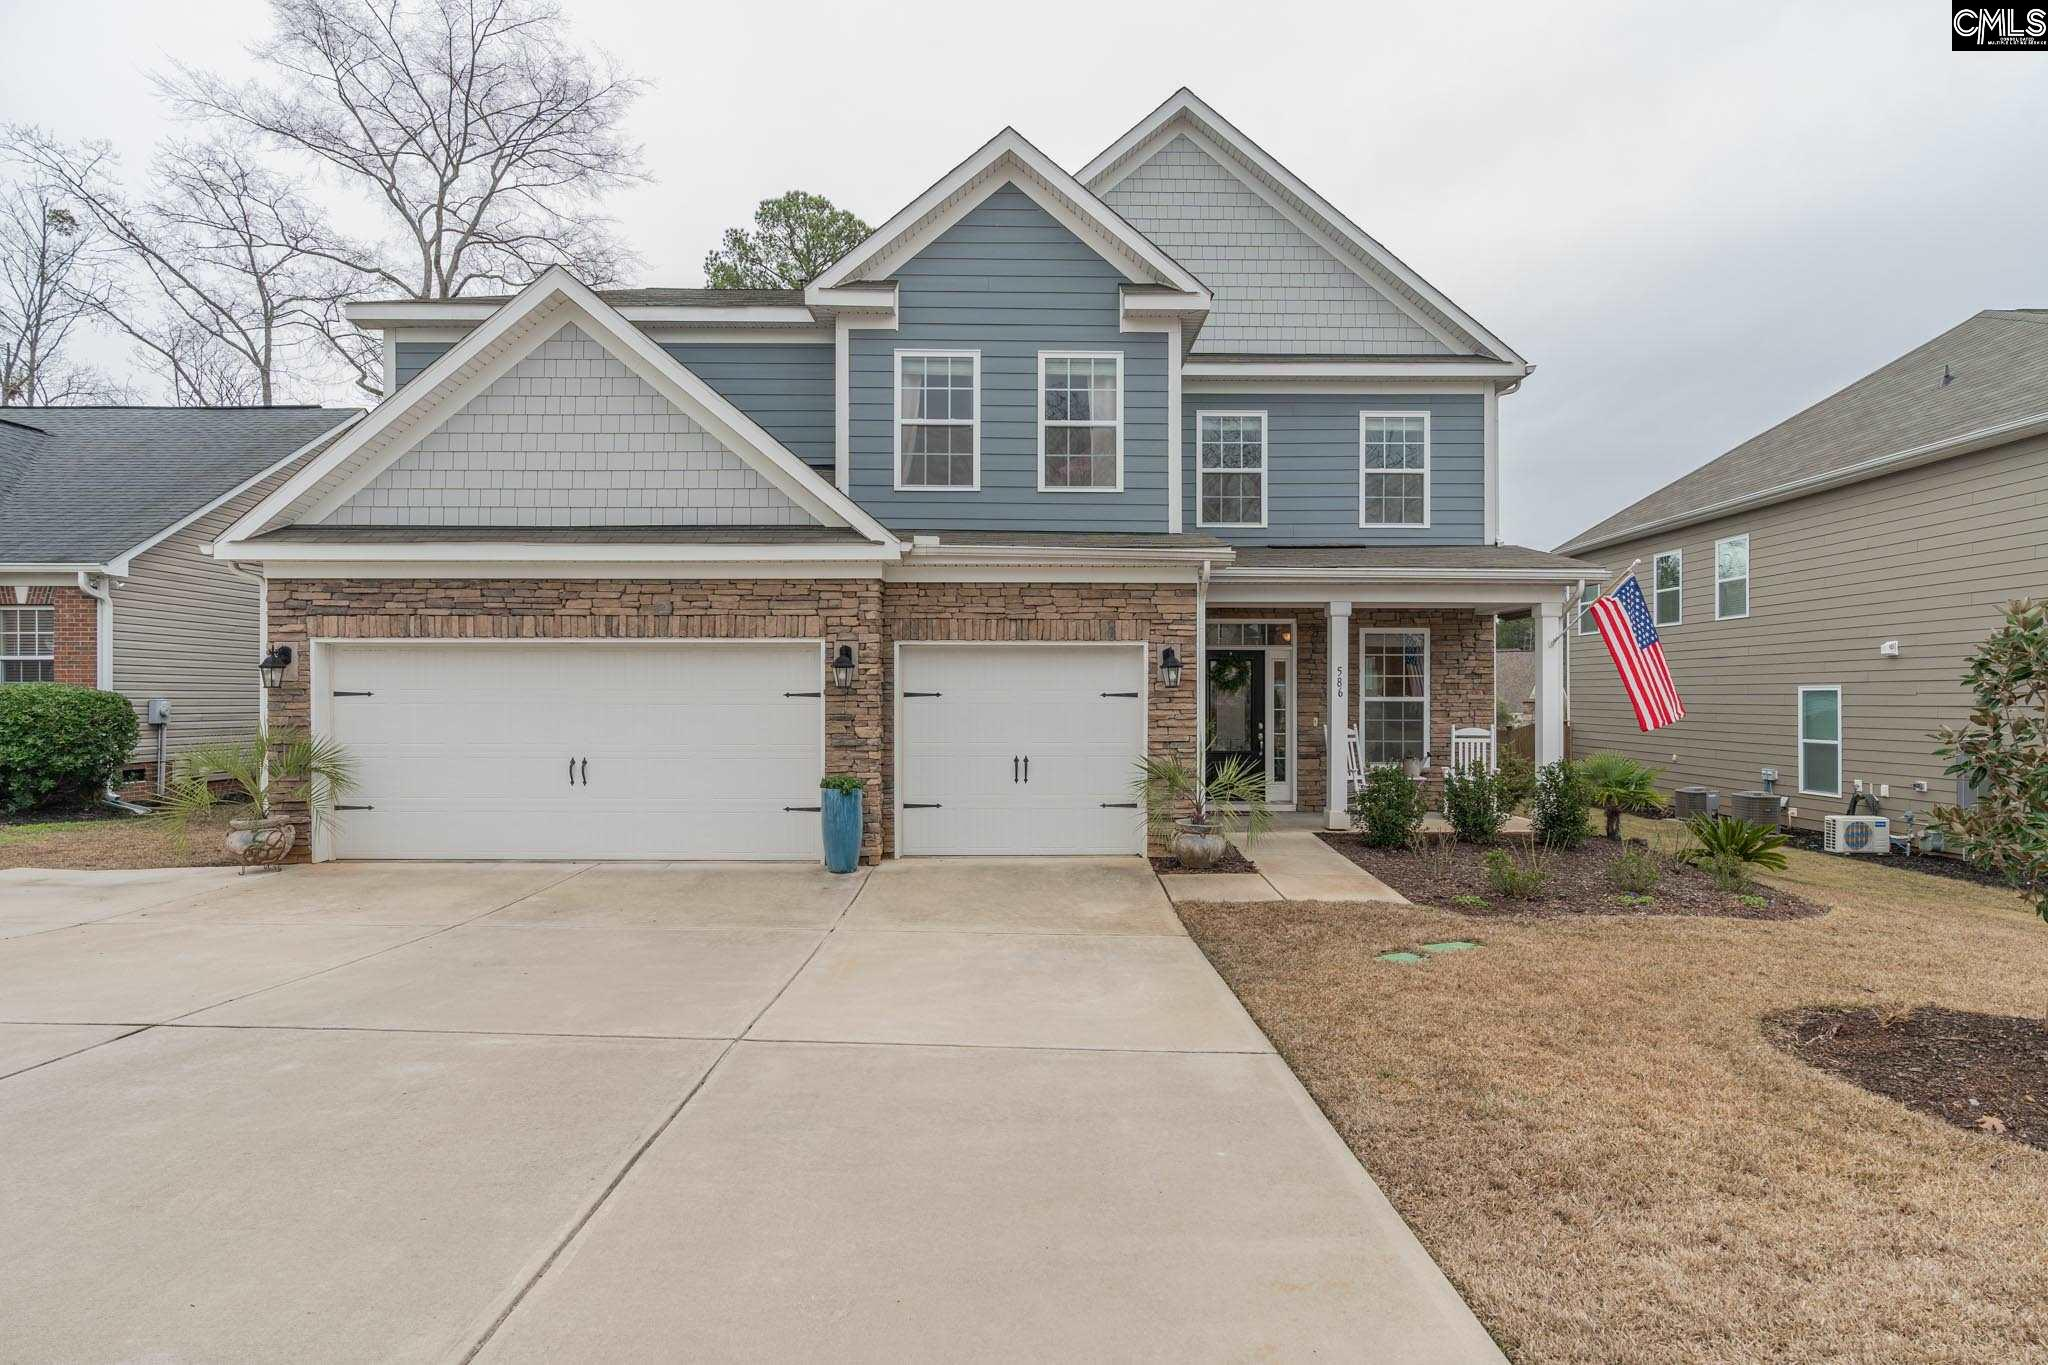 586 Eagles Rest Chapin, SC 29036